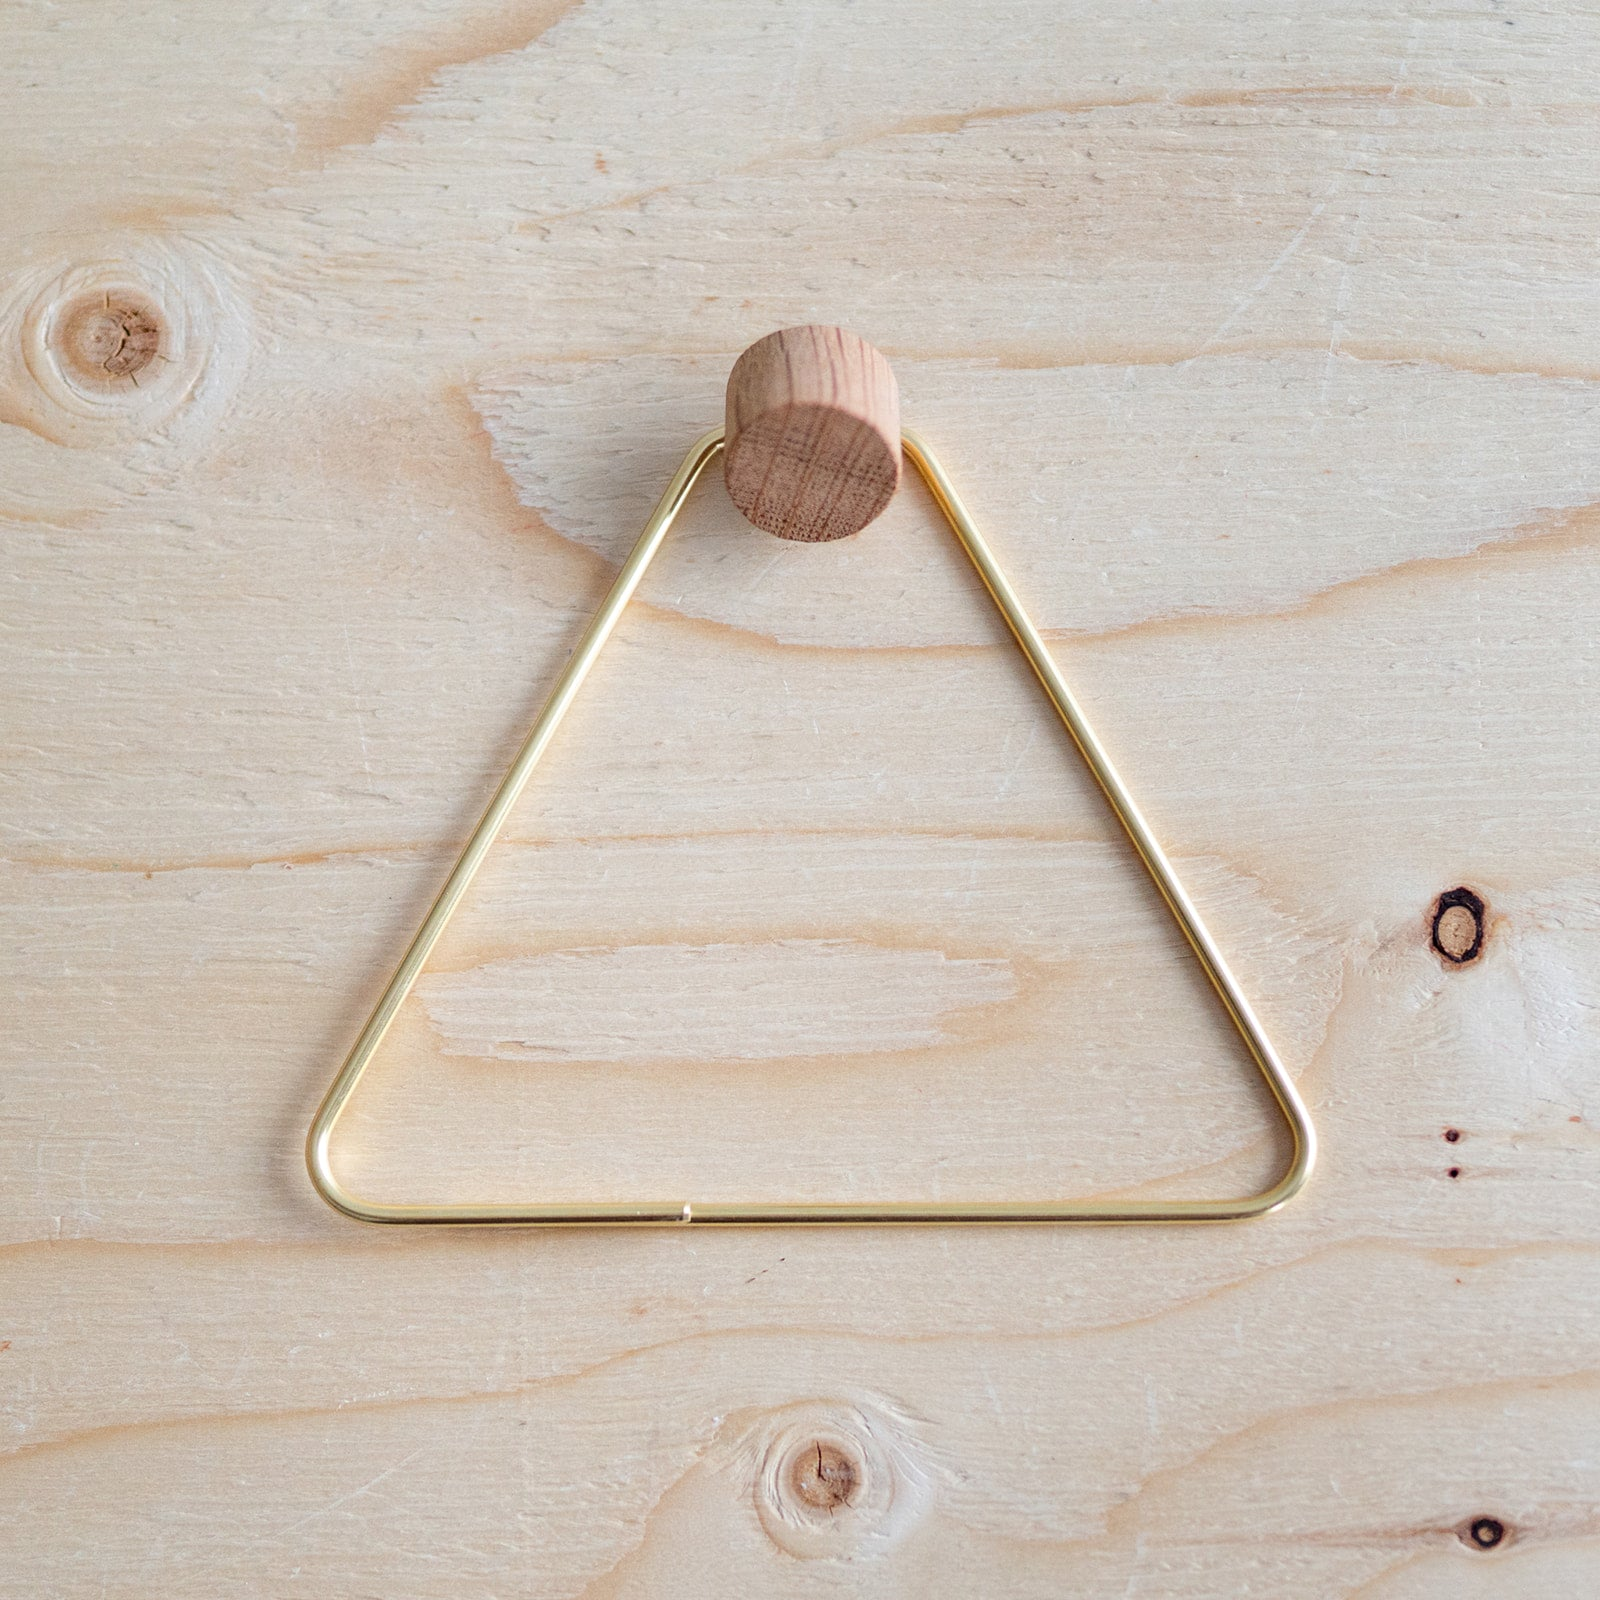 Brass Triangle Toilet Paper Holder - Rug & Weave